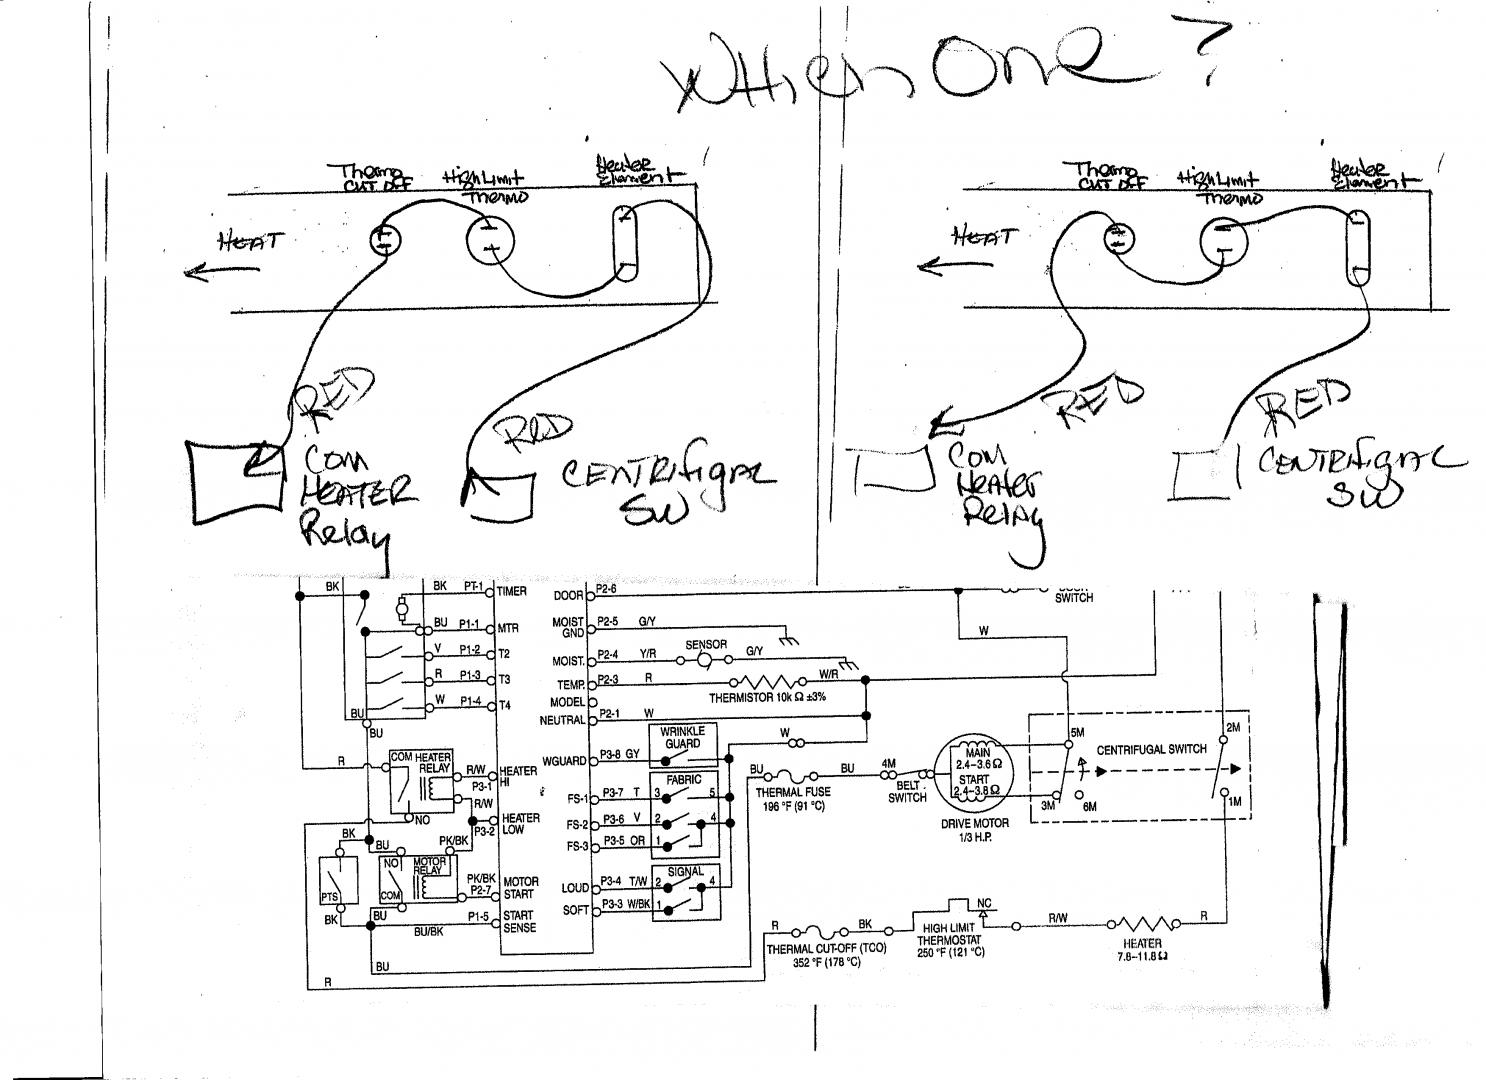 Kenmore Dryer Thermostat Wiring Diagram from www.applianceblog.com